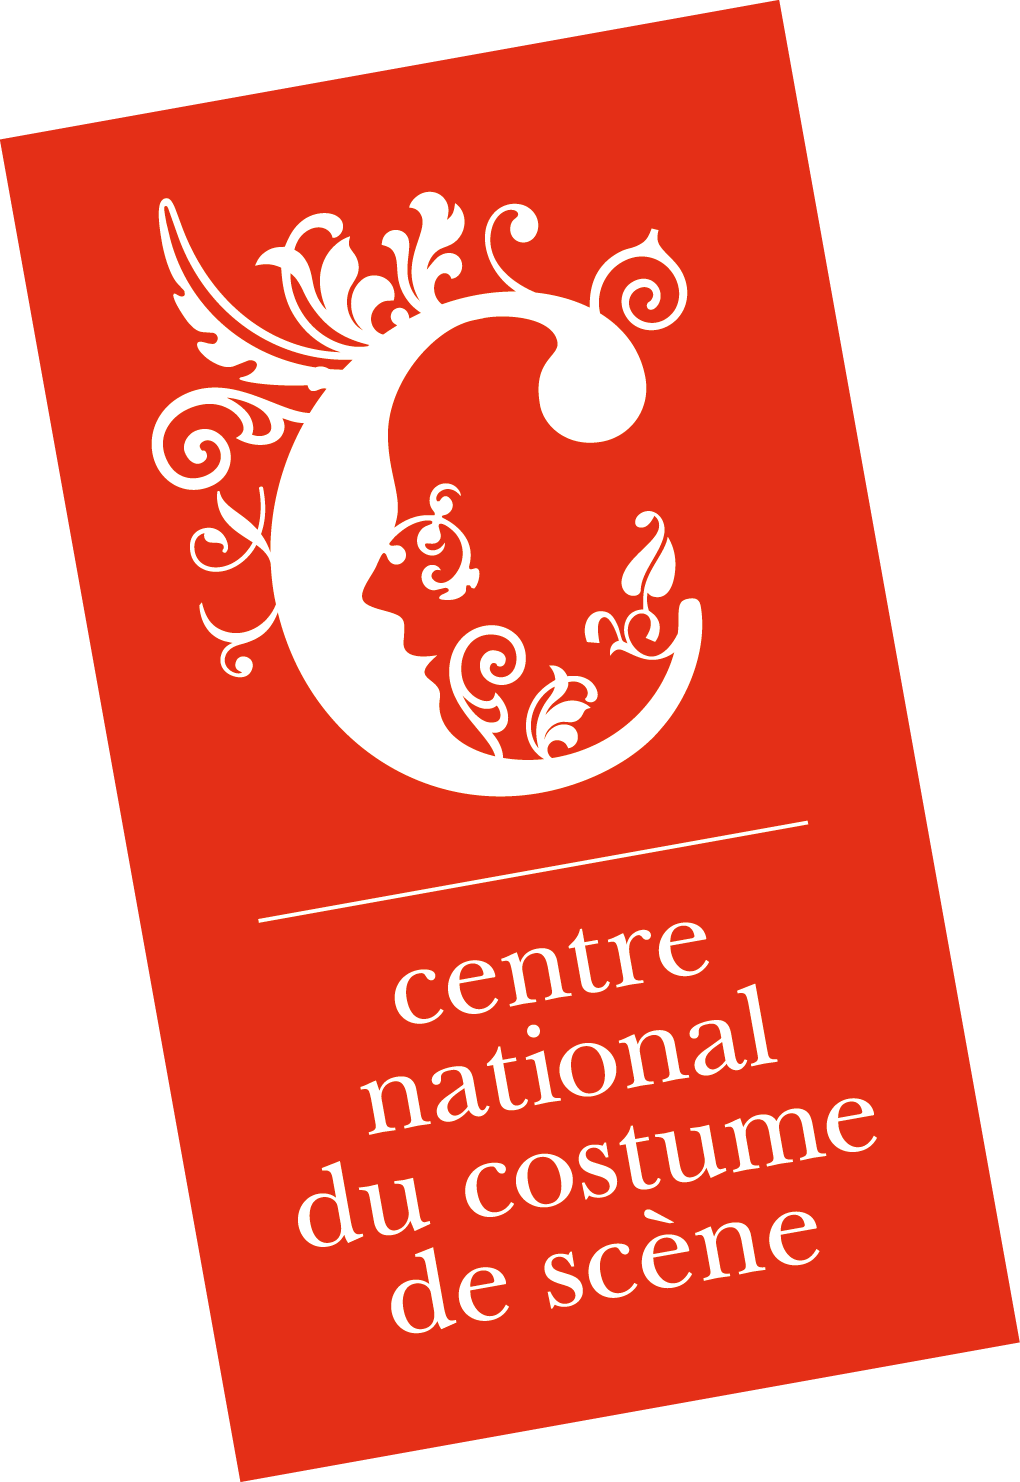 Centre National du Costume de Scèneoulins